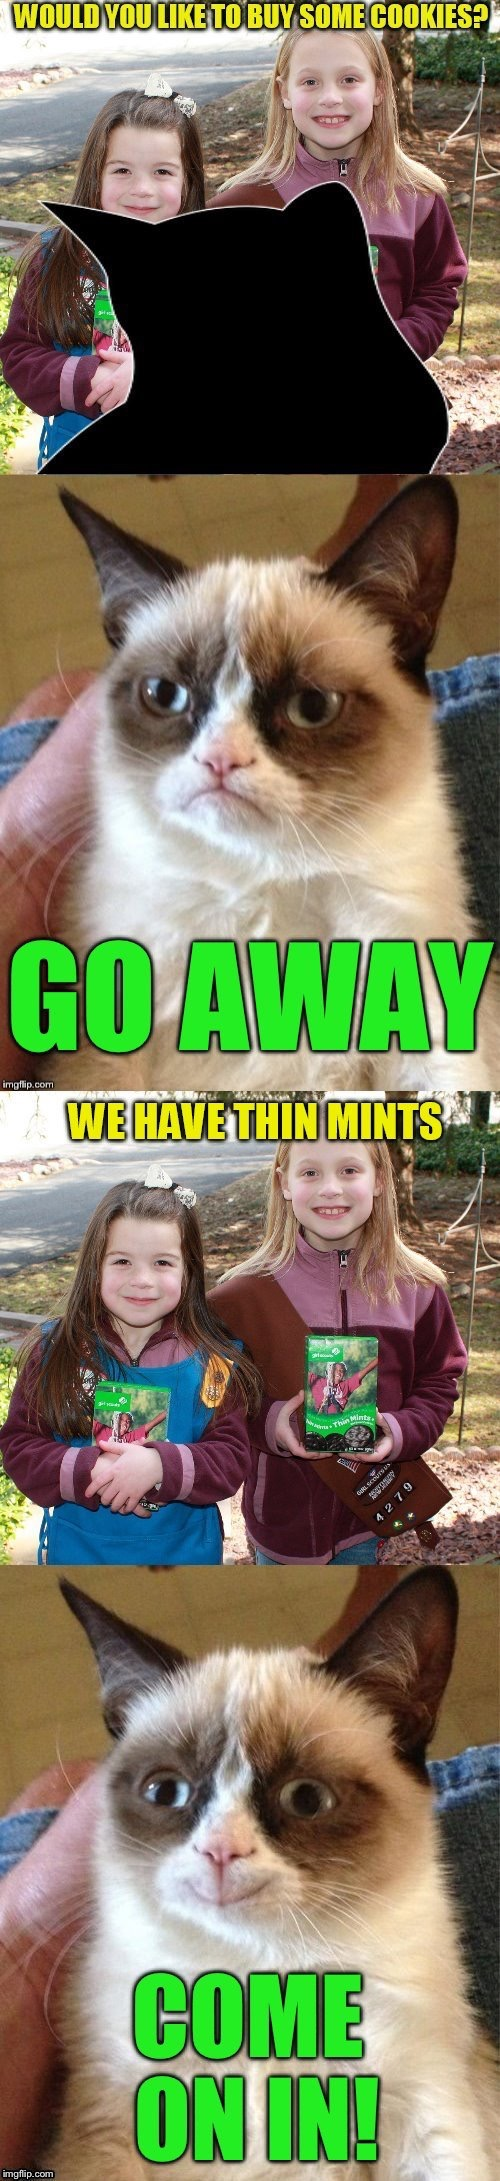 Just in time for Girl Scouts Cookies season! Thanks to DashHopes for the meme on NeedAMeme Stream! | image tagged in memes,grumpy cat,girl scout cookies,thin mints,dashhopes,needameme | made w/ Imgflip meme maker